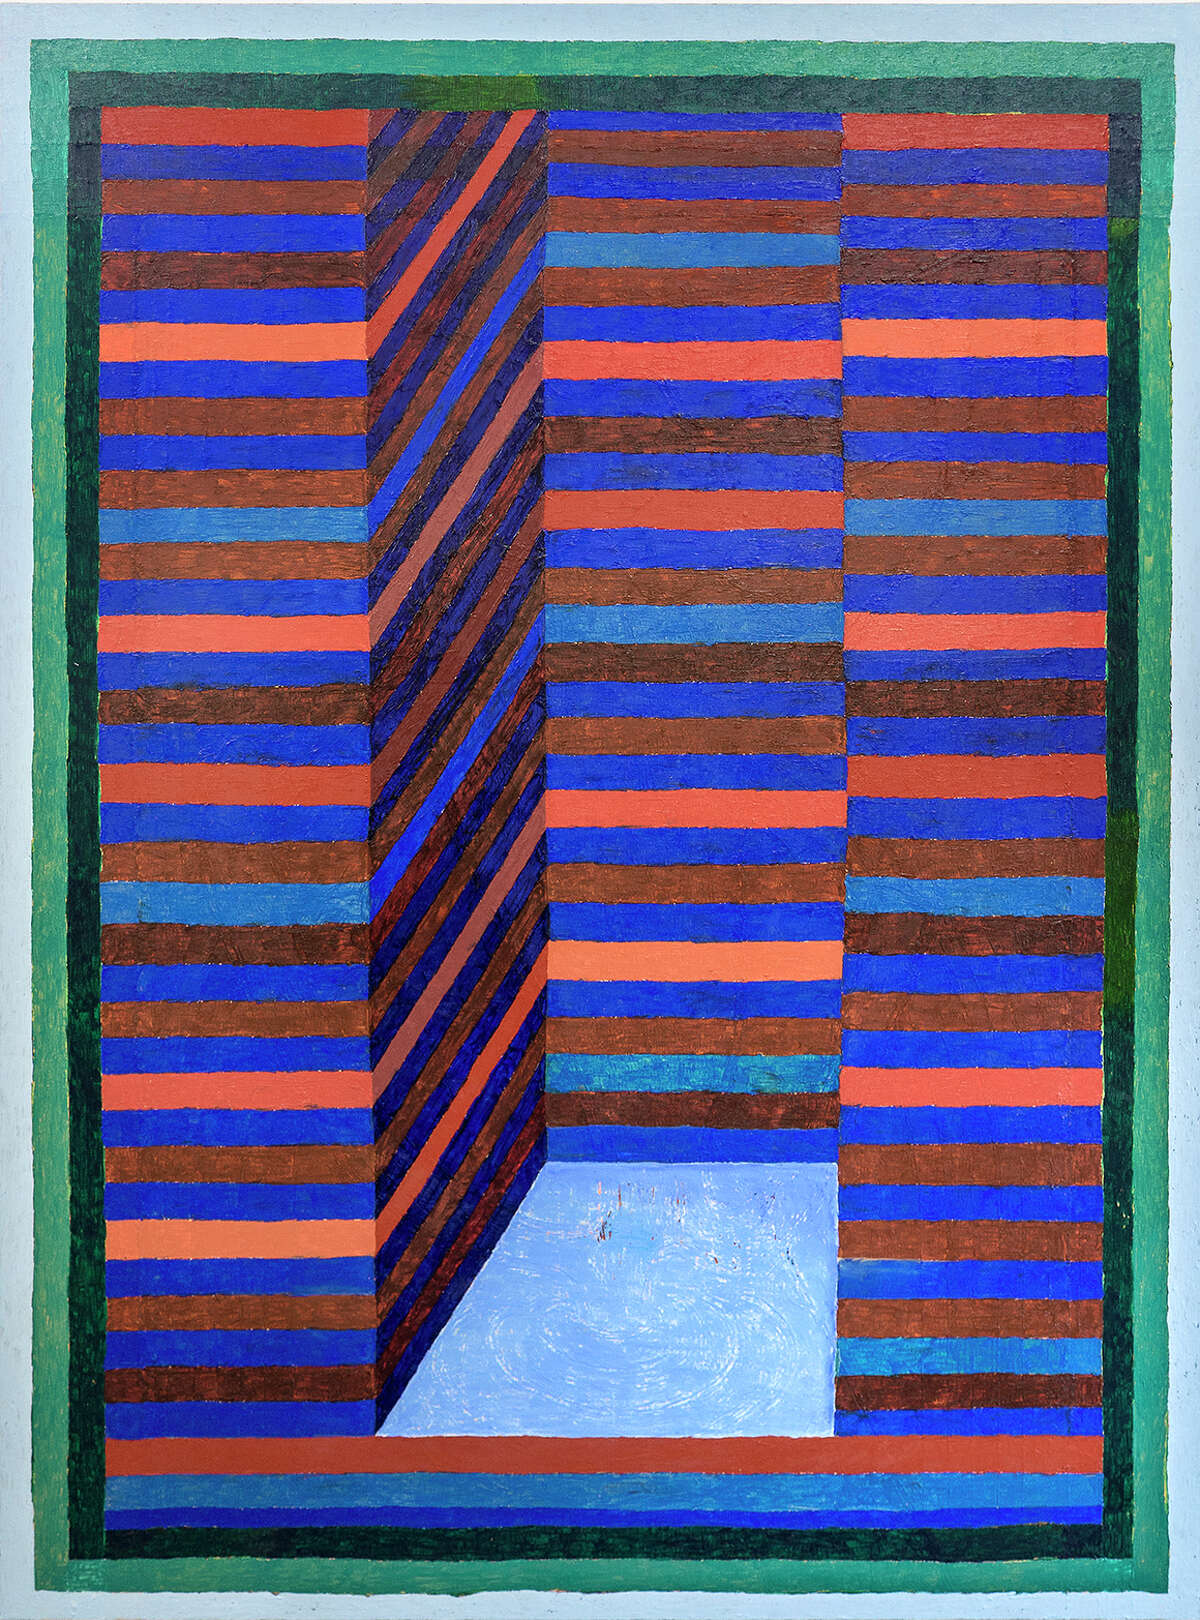 """Matt Kleberg's """"Catacomb Catapult (for Eddie)"""" is one of four recent oil stick on canvas paintings in his show """"Caterwauler"""" at Hiram Butler Gallery through Aug. 27."""